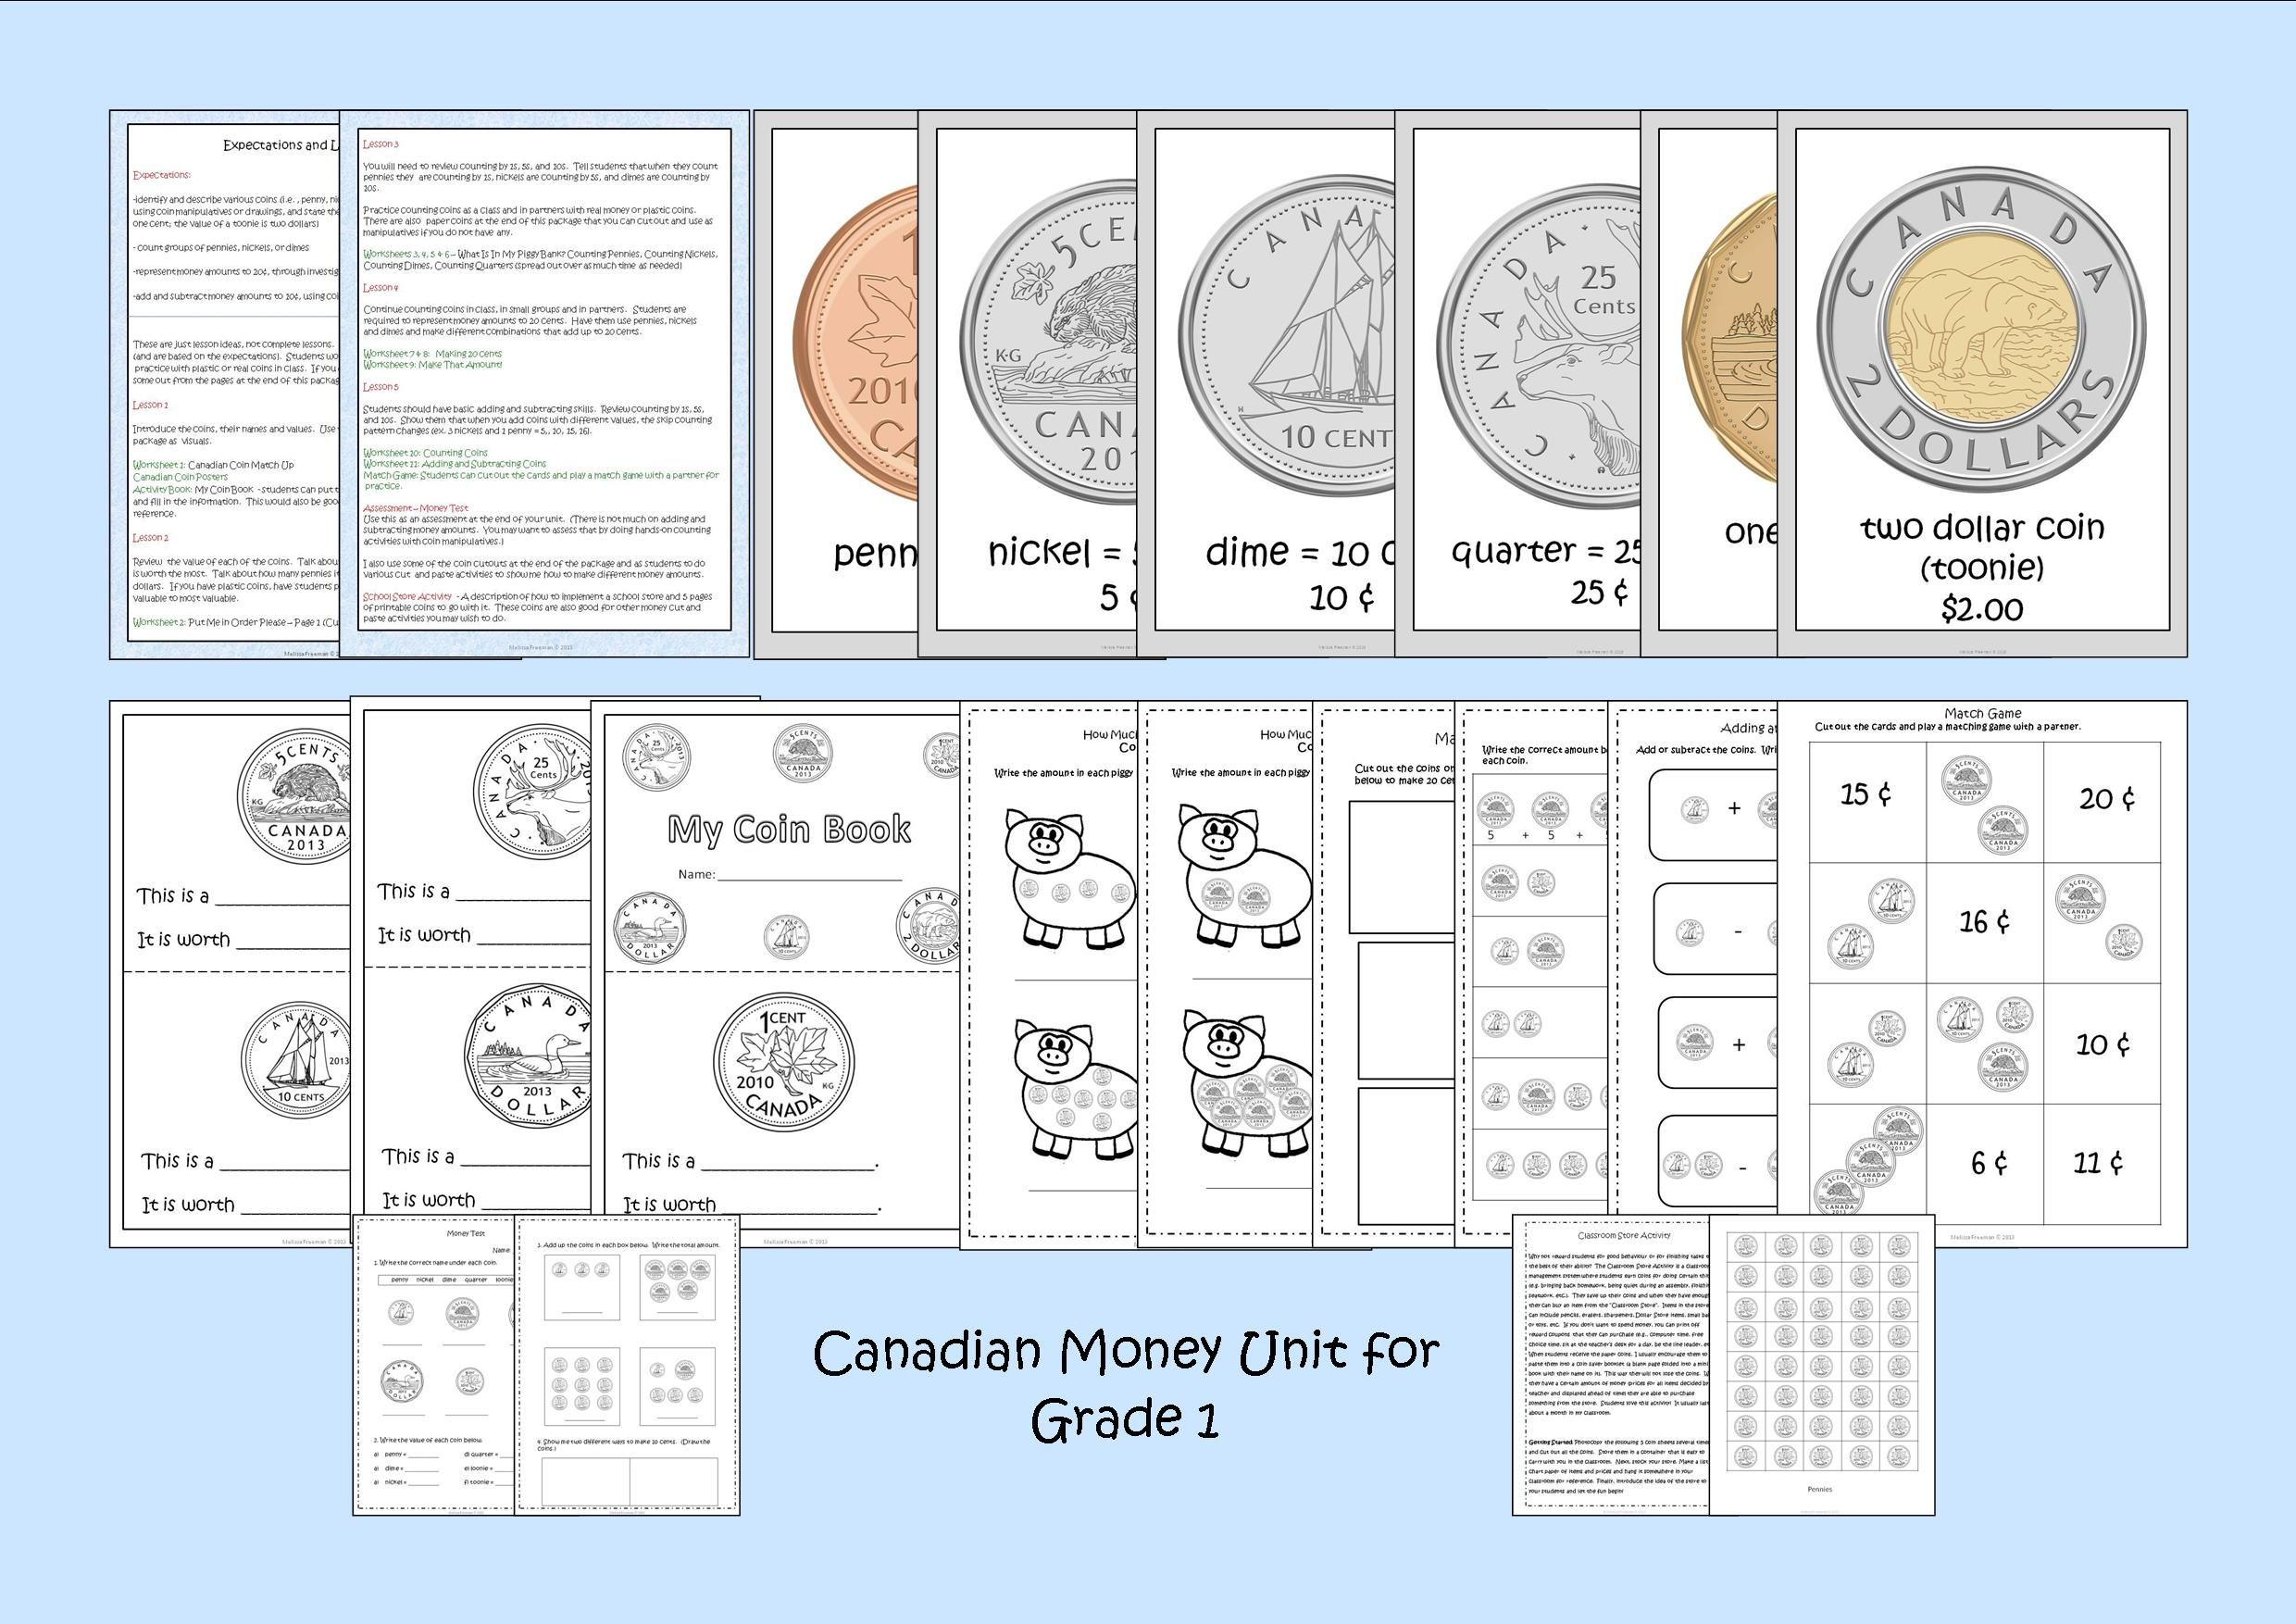 This Canadian Money Unit For Grade 1 Contains Lesson Ideas Based On The Expectations 6 Colour